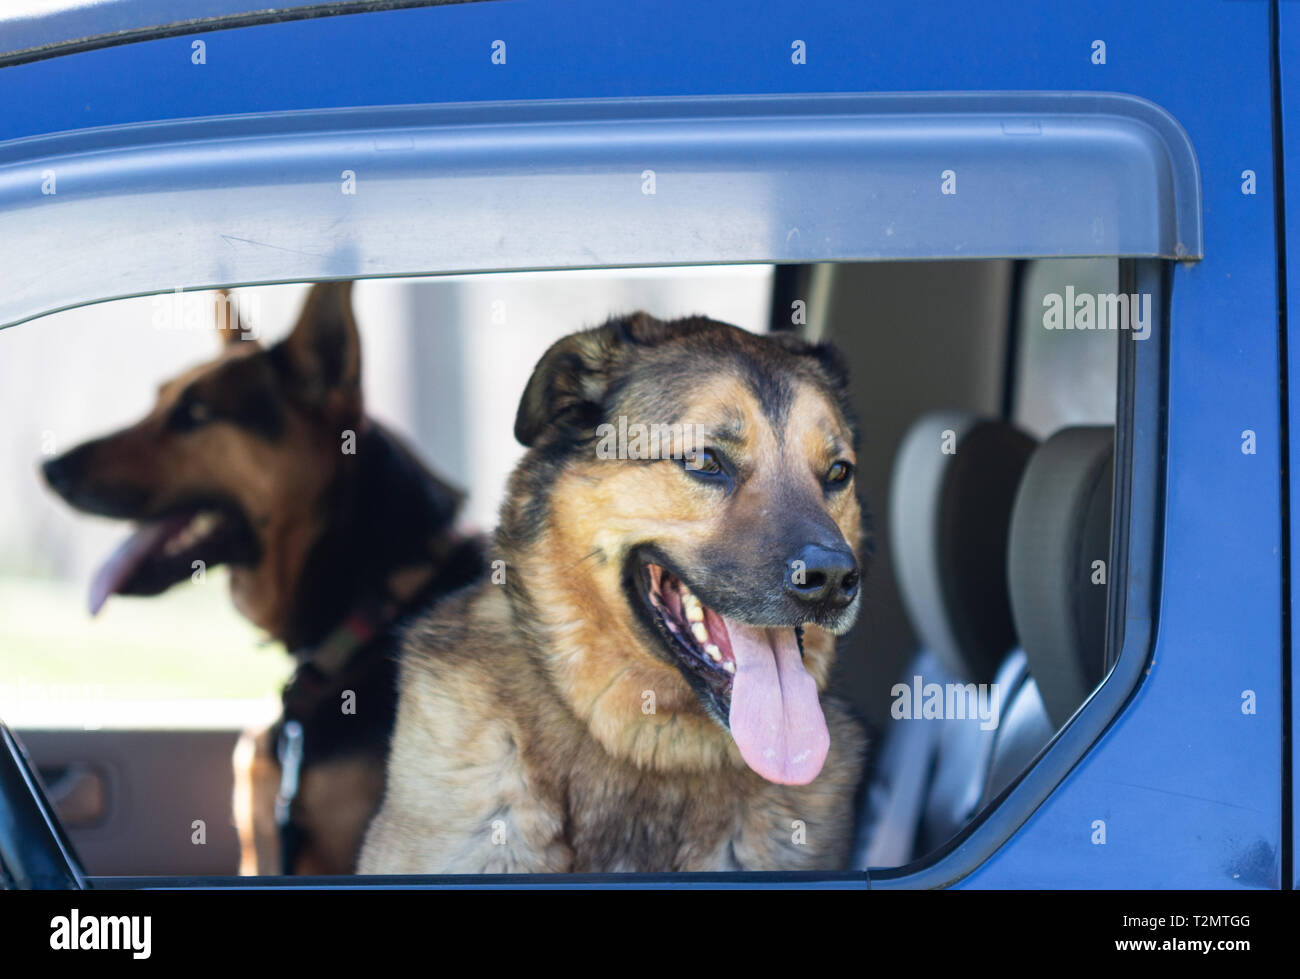 A German Shepherd mix and a Dutch Shepherd mix (Canis lupus familiaris) sit in the front seat waiting, ready for excitement Stock Photo